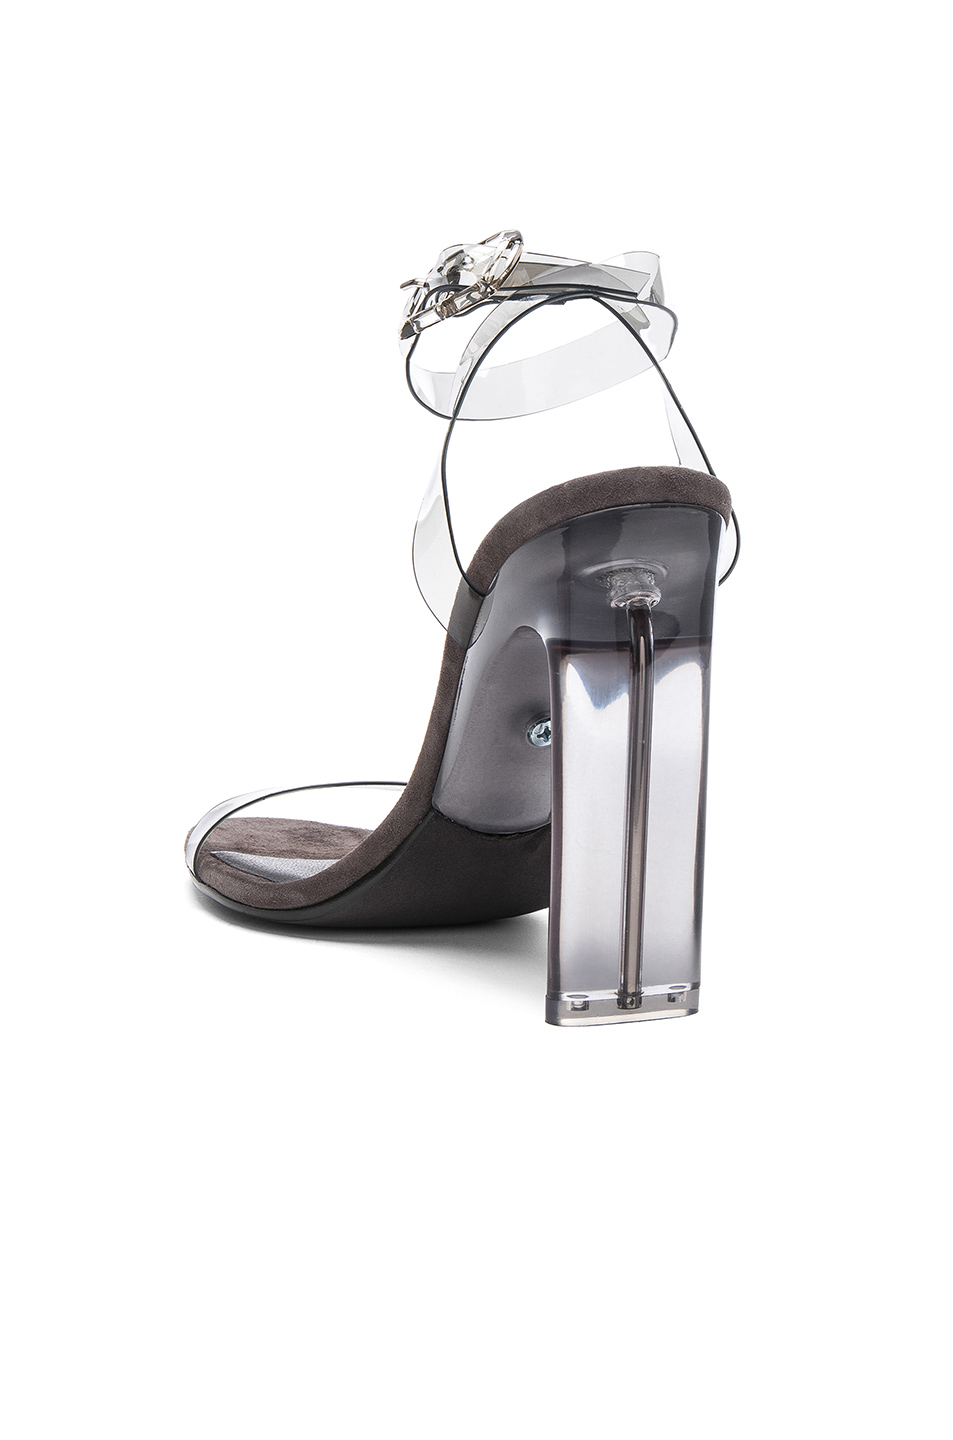 72ce7e632ab Buy Original YEEZY Season 6 PVC Sandals with Ankle Strap at ...